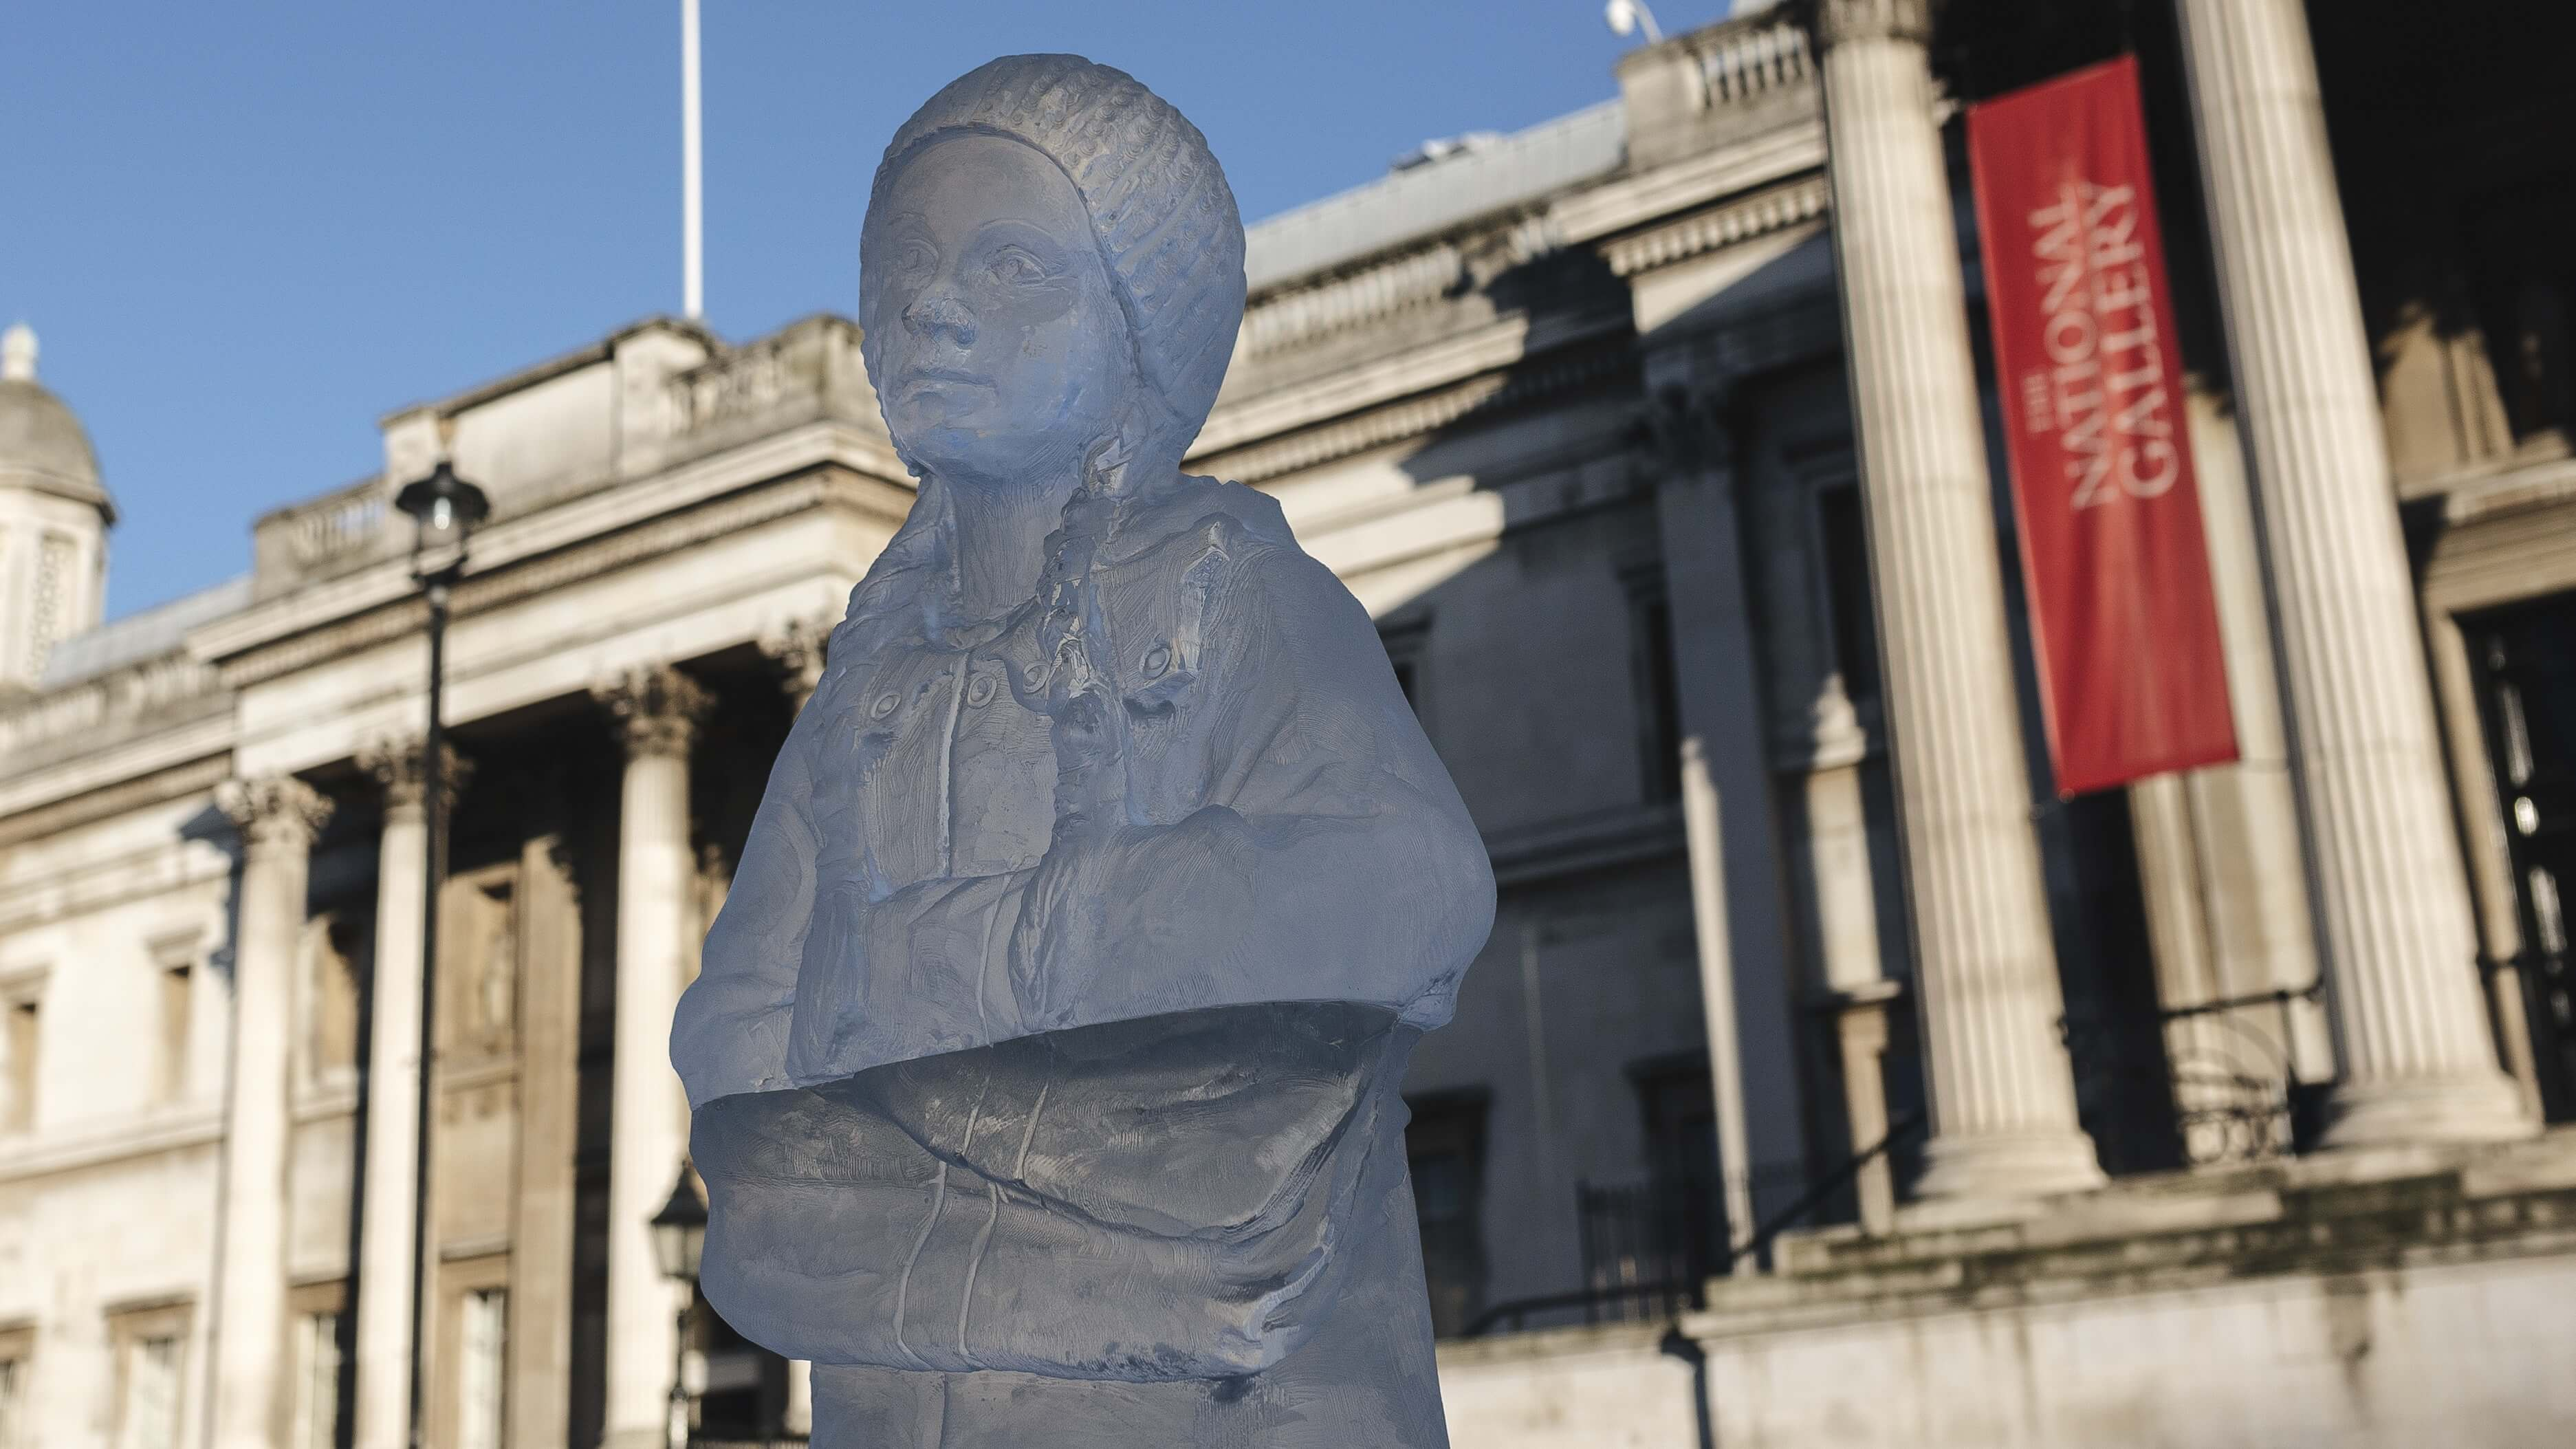 This Greta Thunberg Ice Sculpture Is Melting (Like All Of the Glaciers)